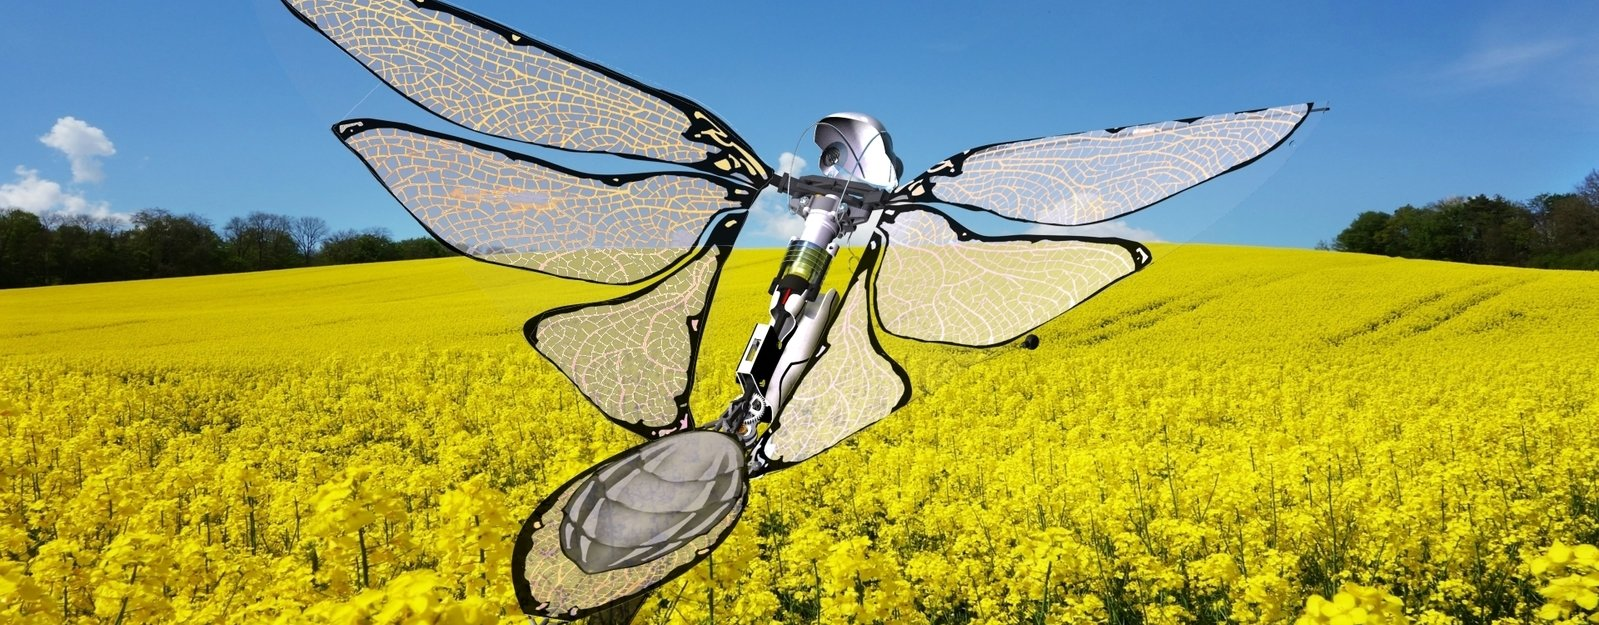 Why Edwin Van Ruymbeke Thinks the Drones of the Future Will Look Like Birds and Bugs